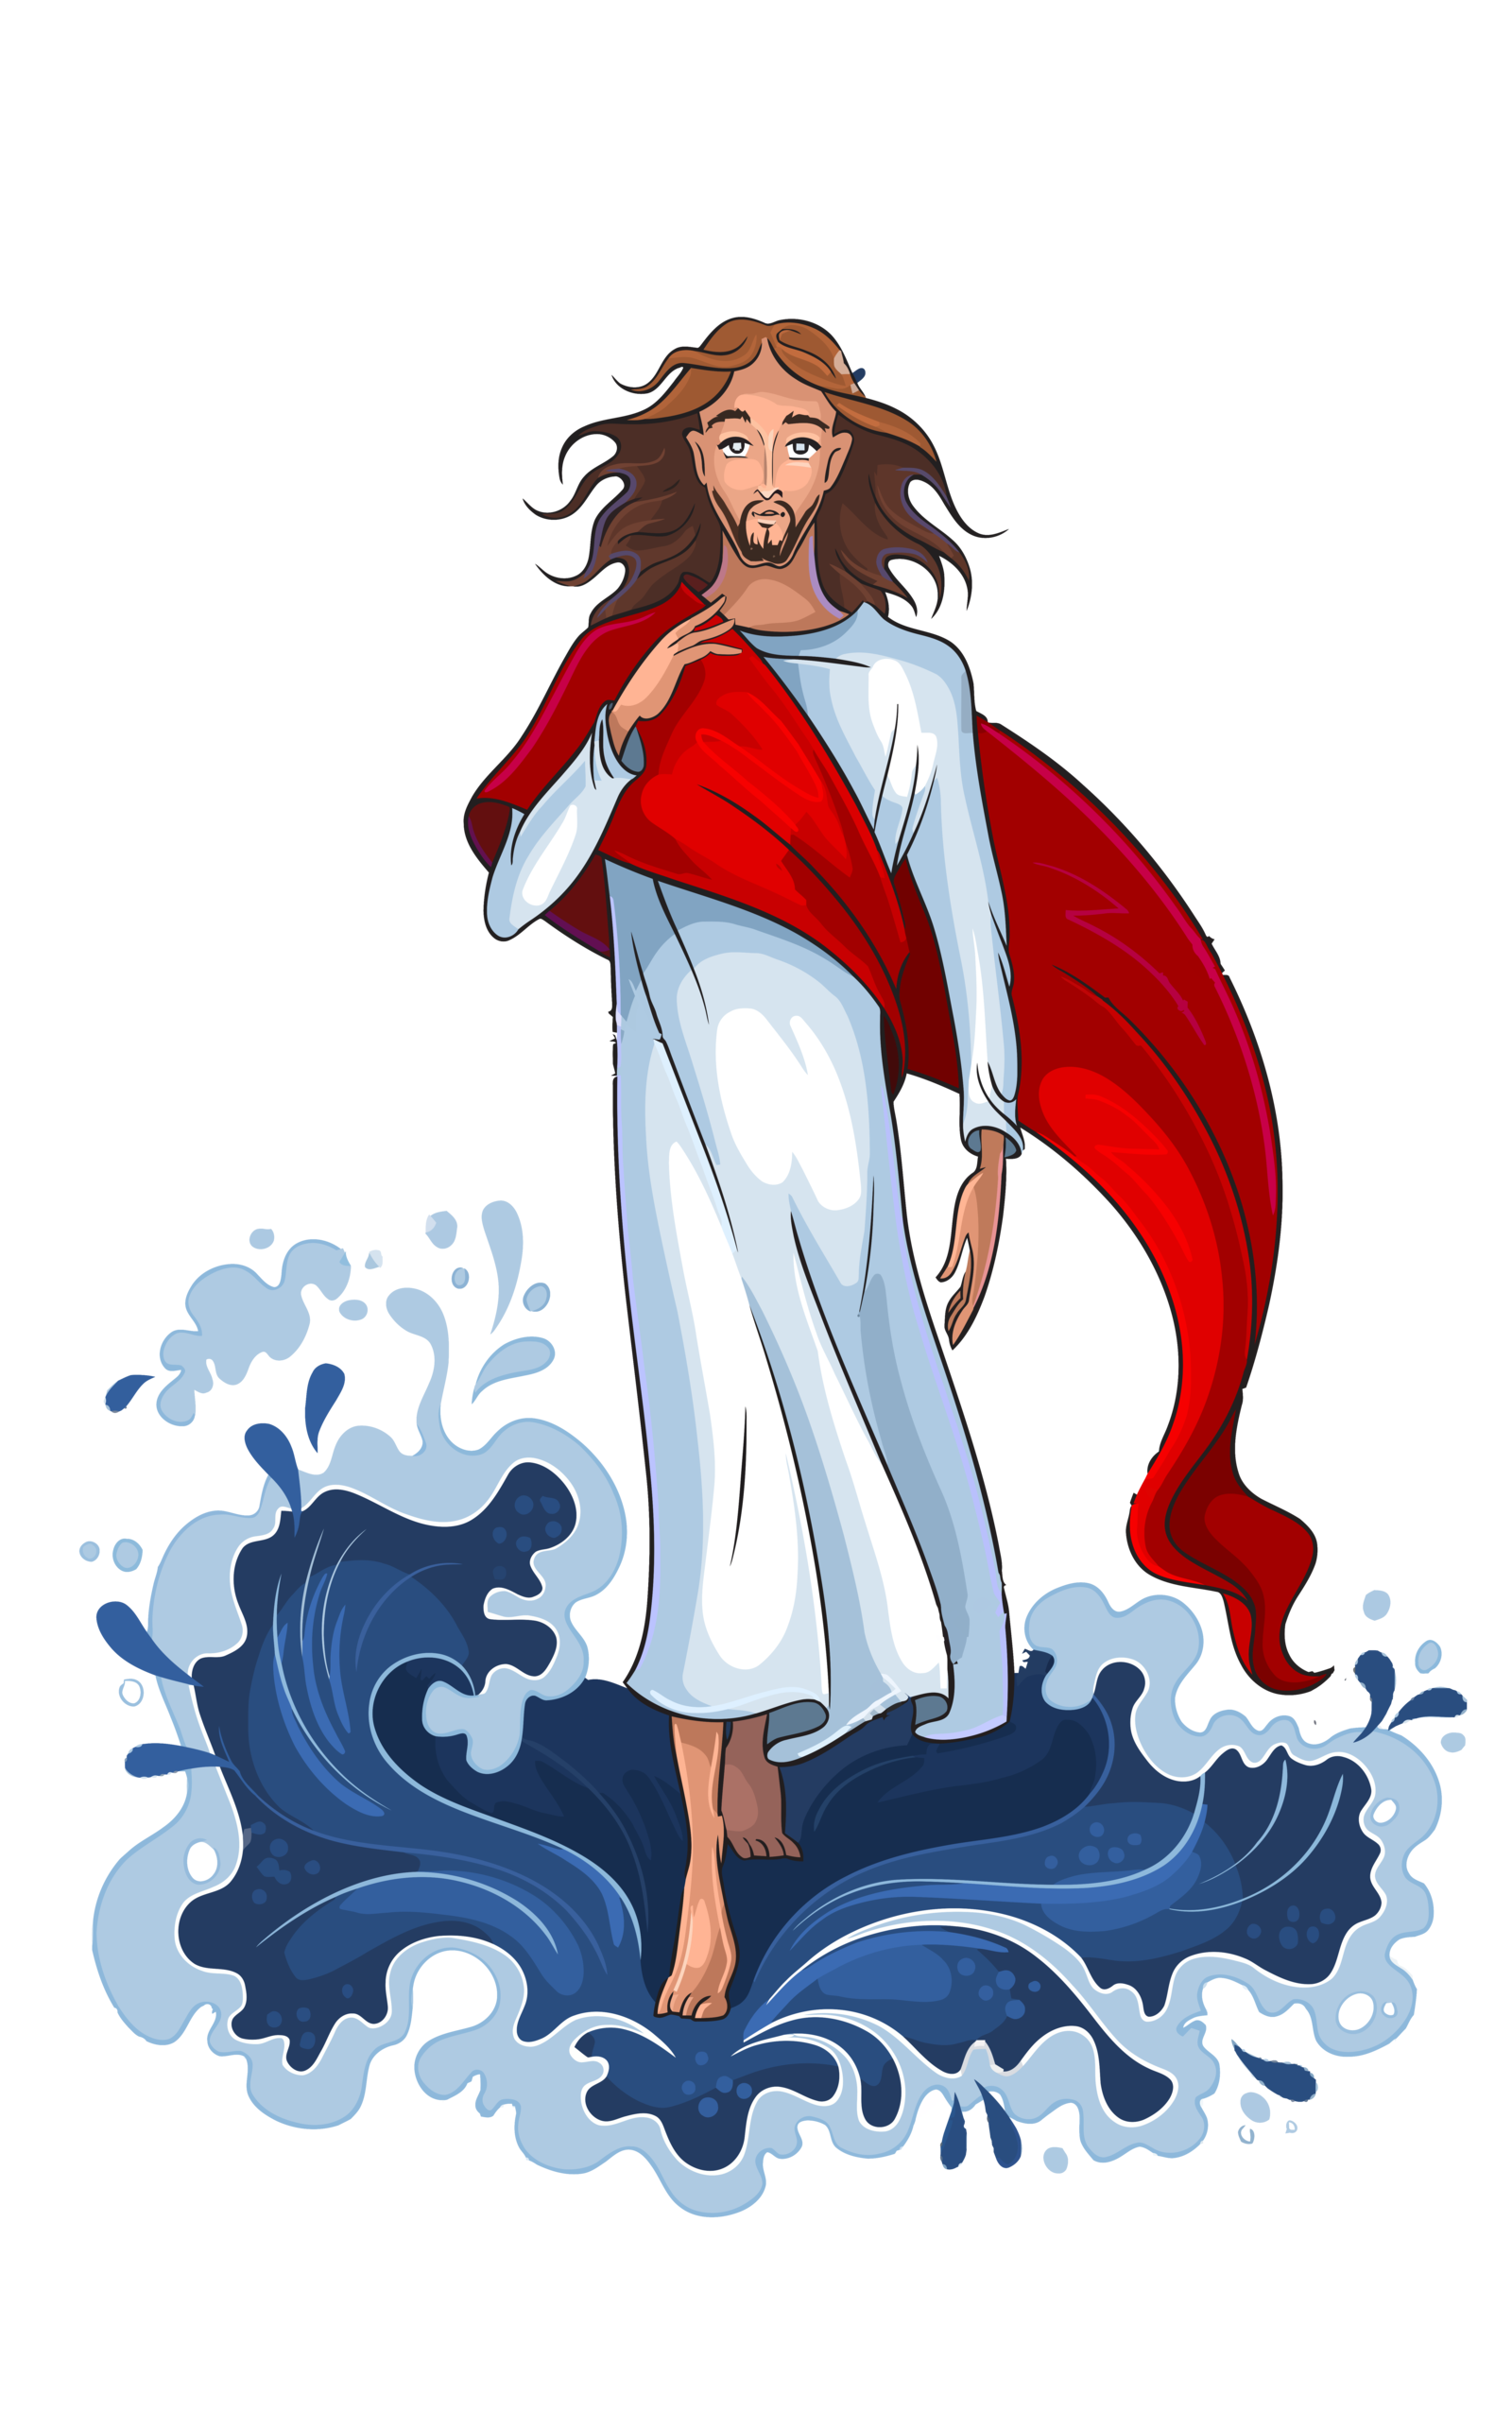 Walking on water clipart free picture transparent library Jesus walking on water clip art clipart images gallery for ... picture transparent library